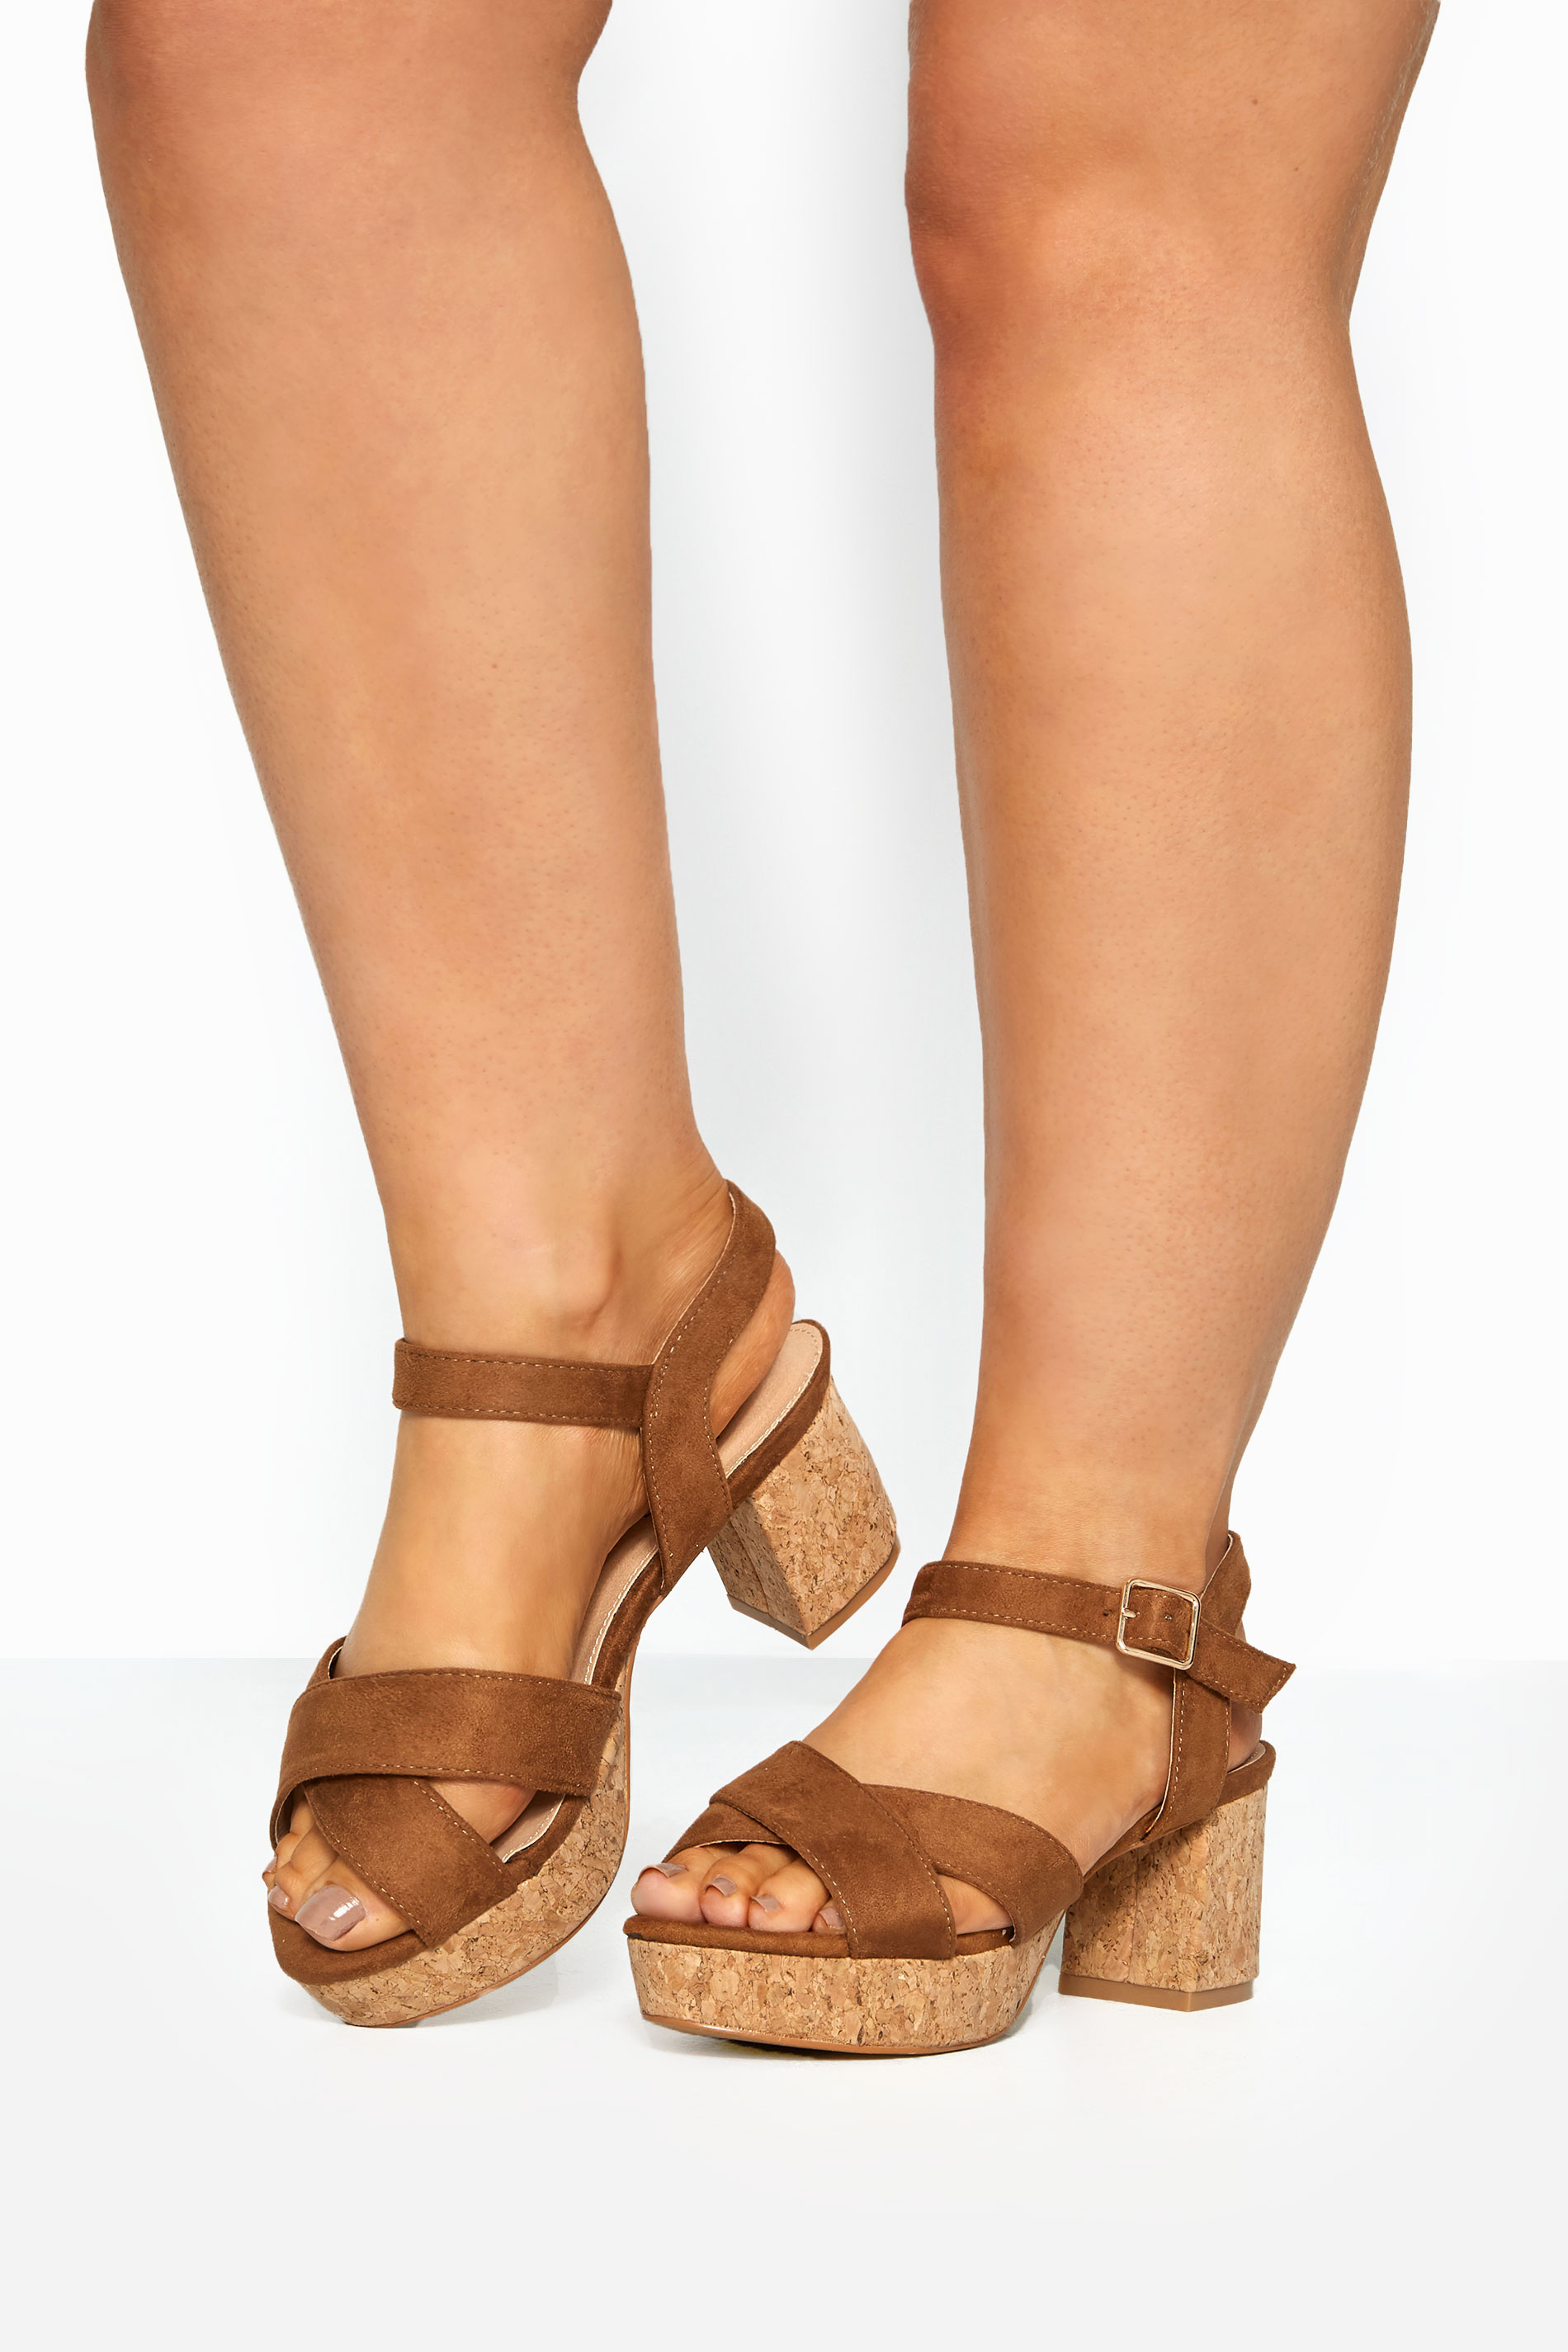 LIMITED COLLECTION Brown Cork Heeled Platform Sandals In Extra Wide Fit